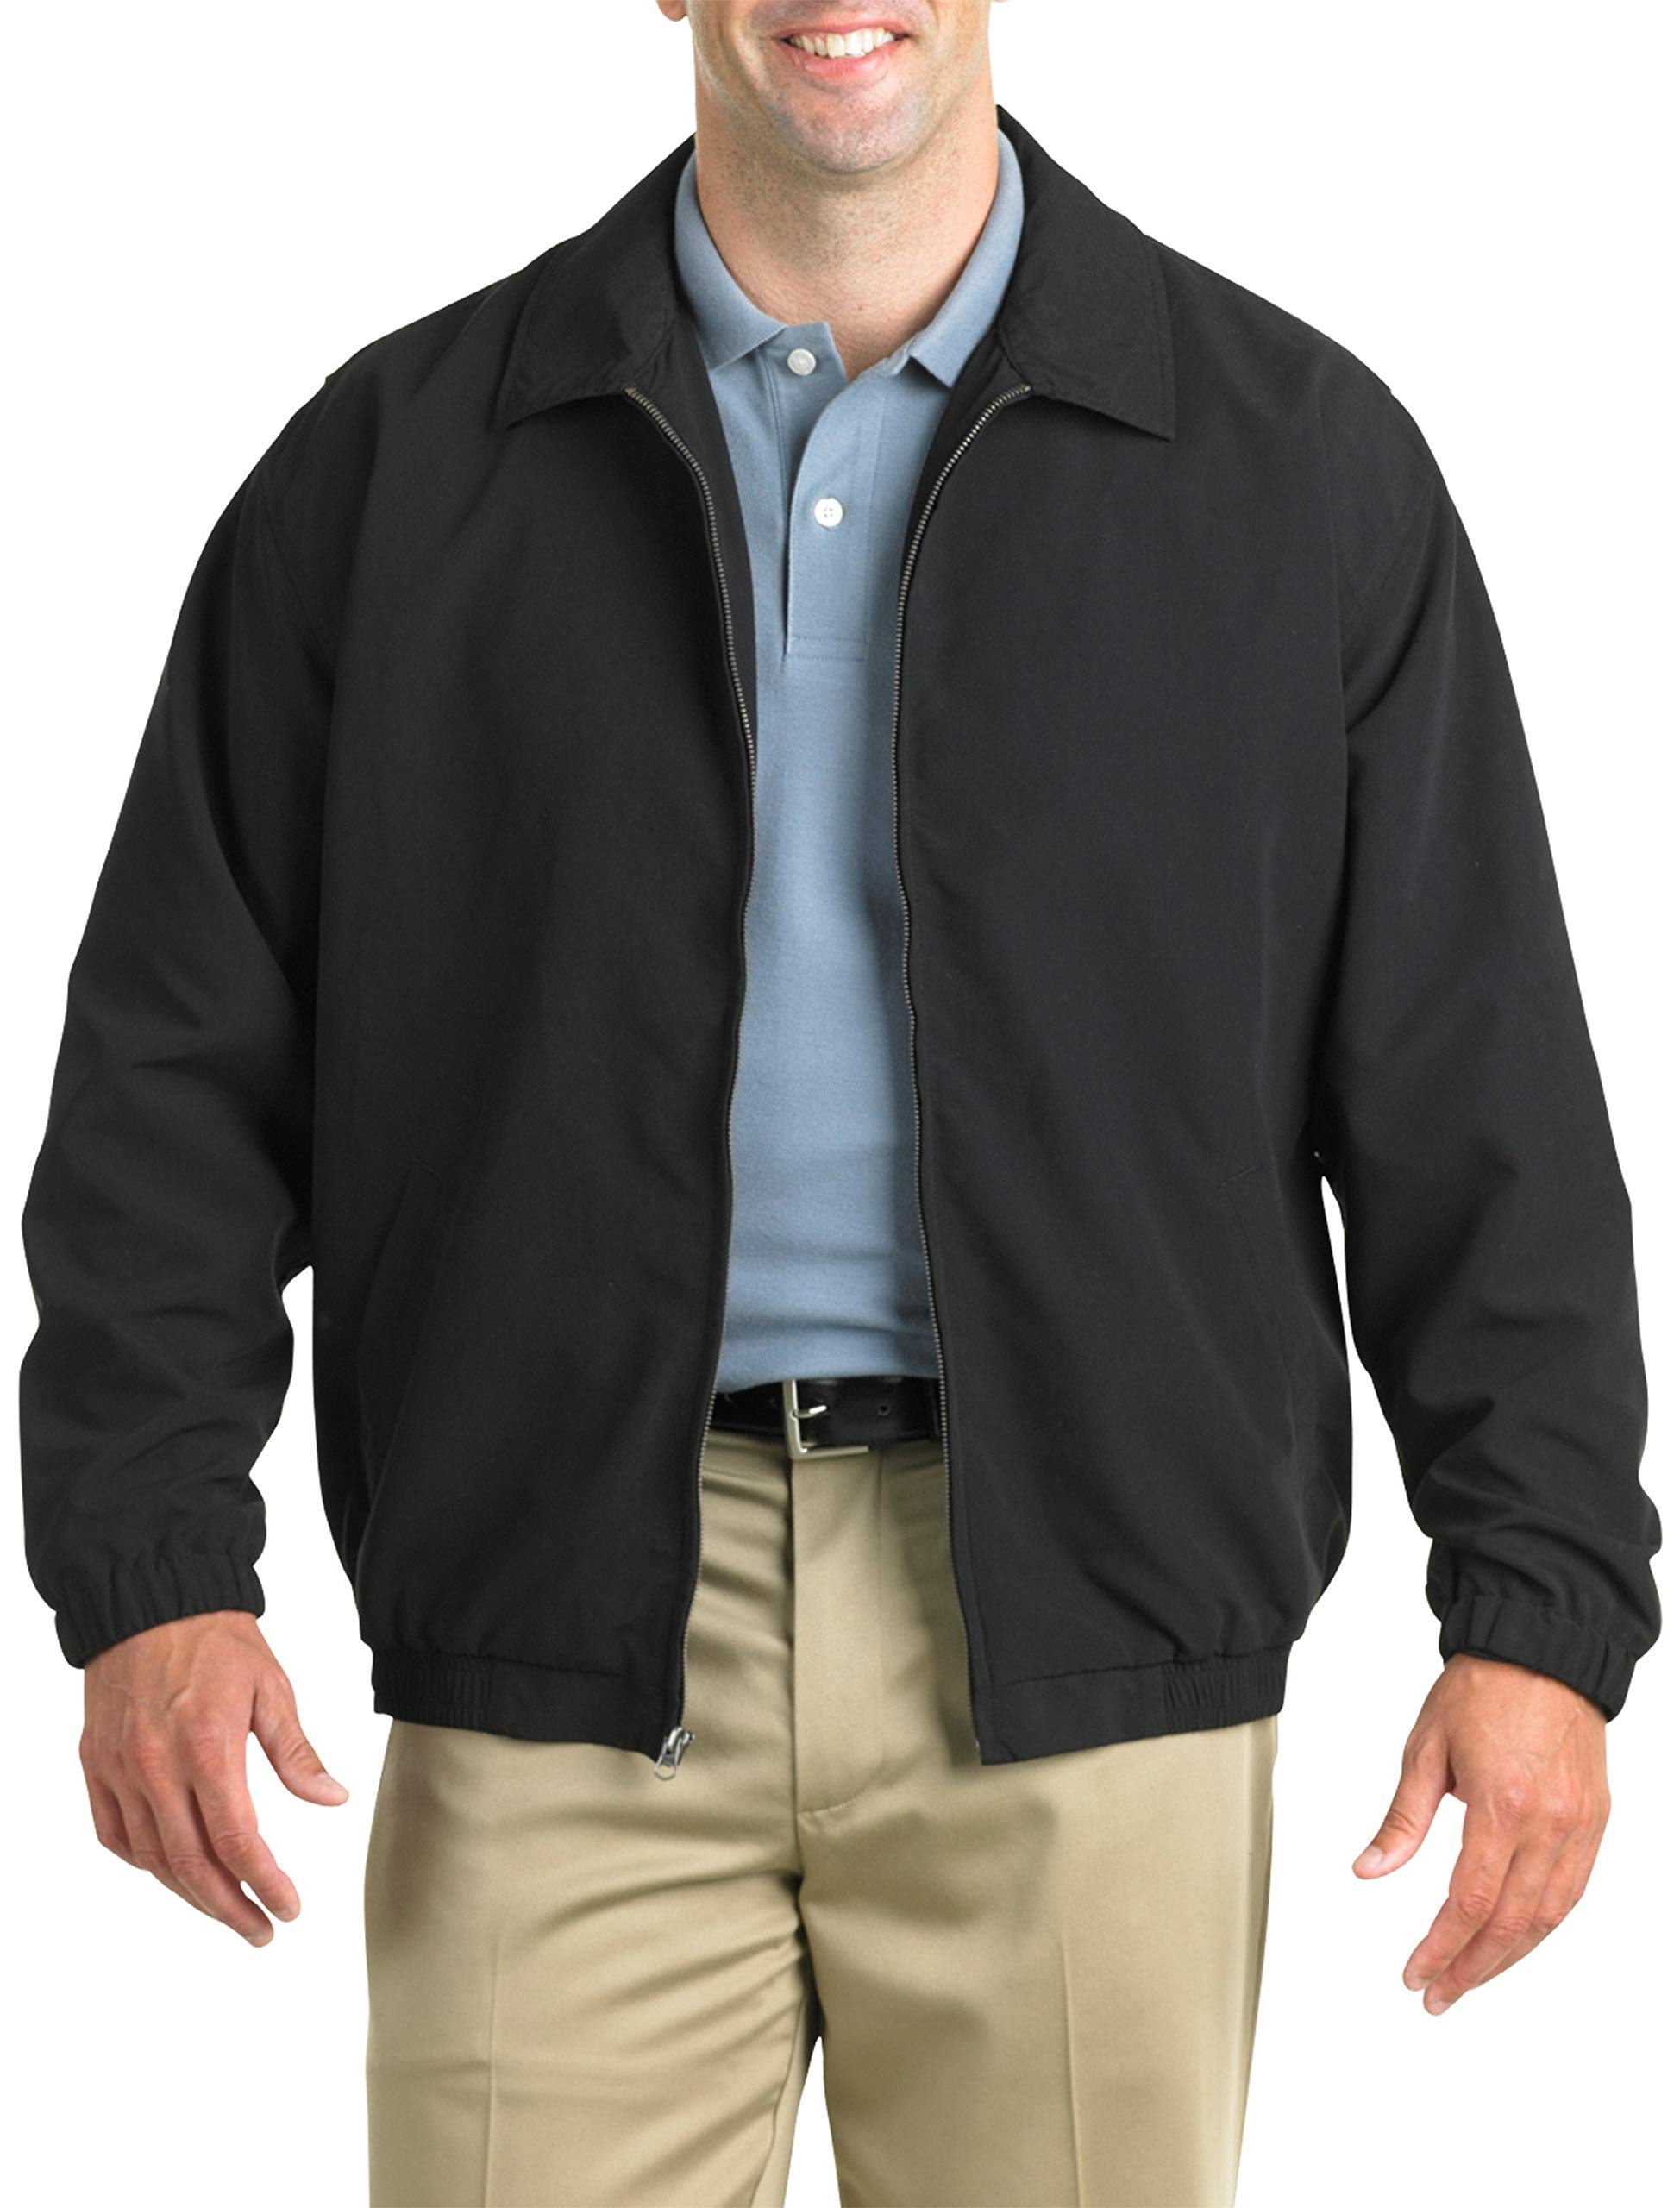 Harbor Bay by DXL Big and Tall Golf Jacket, Black, X-Large by Harbor Bay